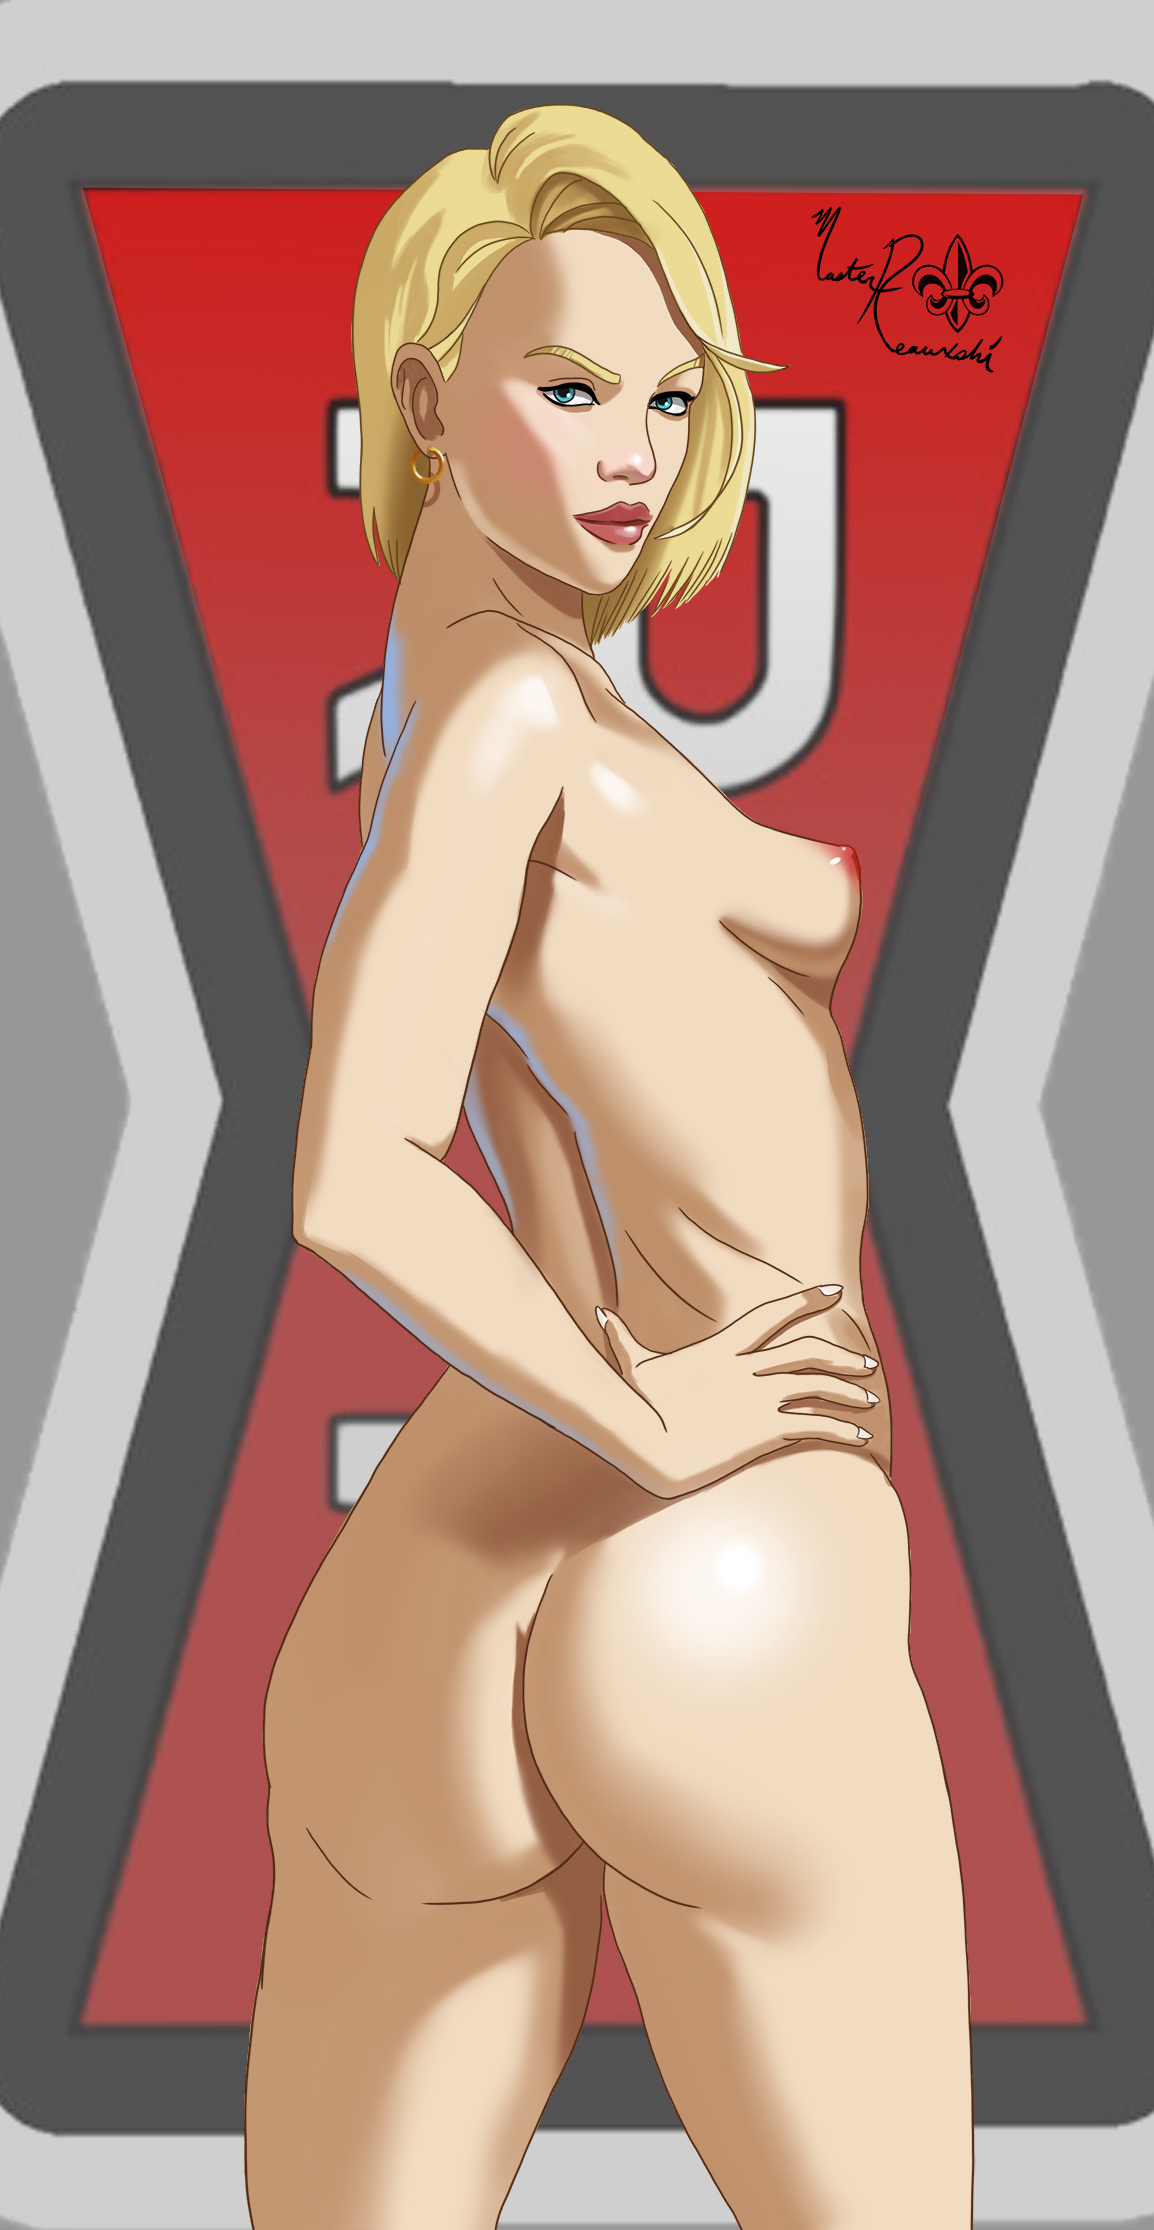 Android 18 Nude android 18 nudemasterreauxshi on newgrounds